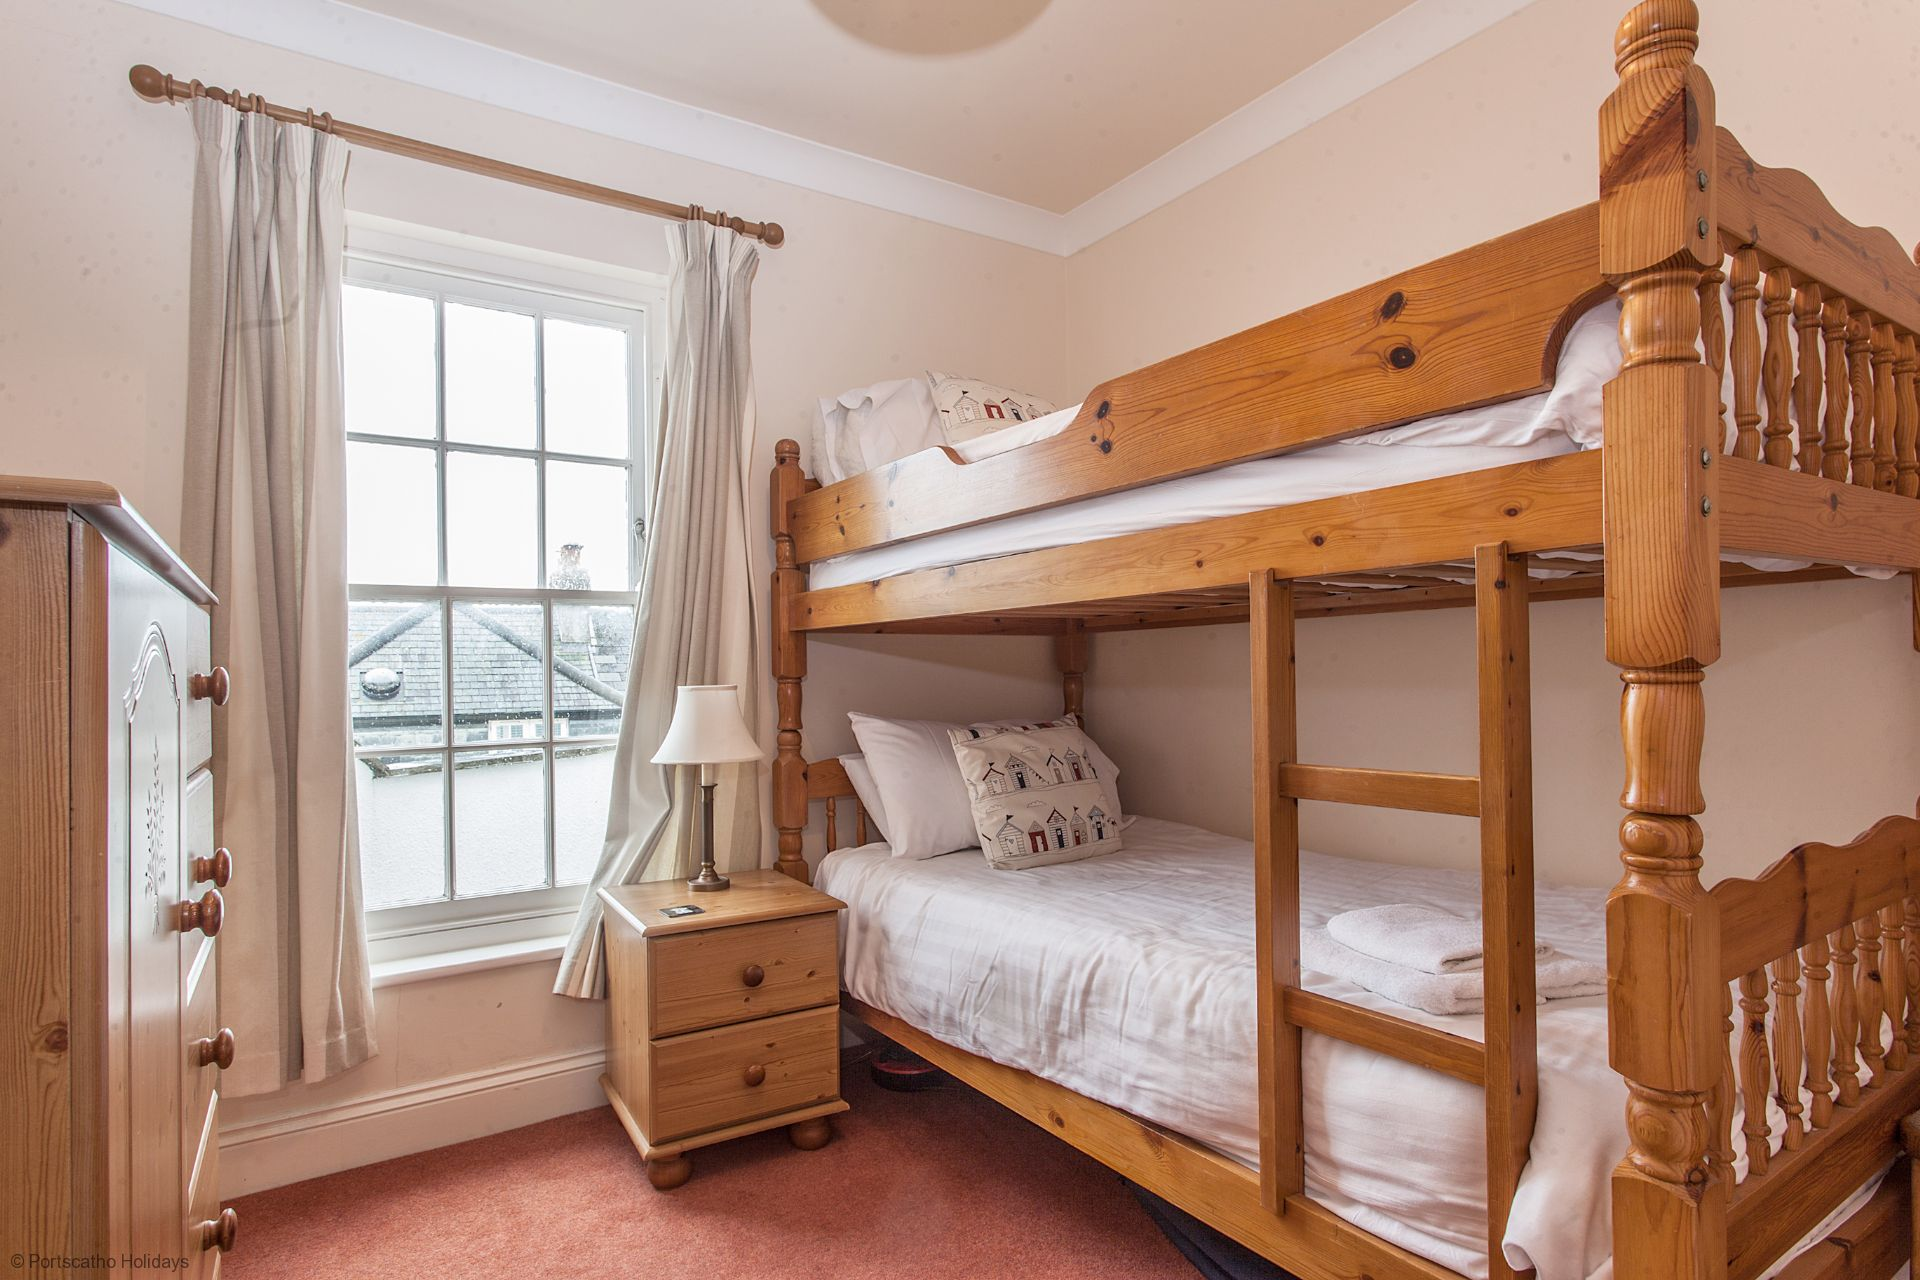 Sea View; St. Mawes; Cornwall; Bunk Bed Room